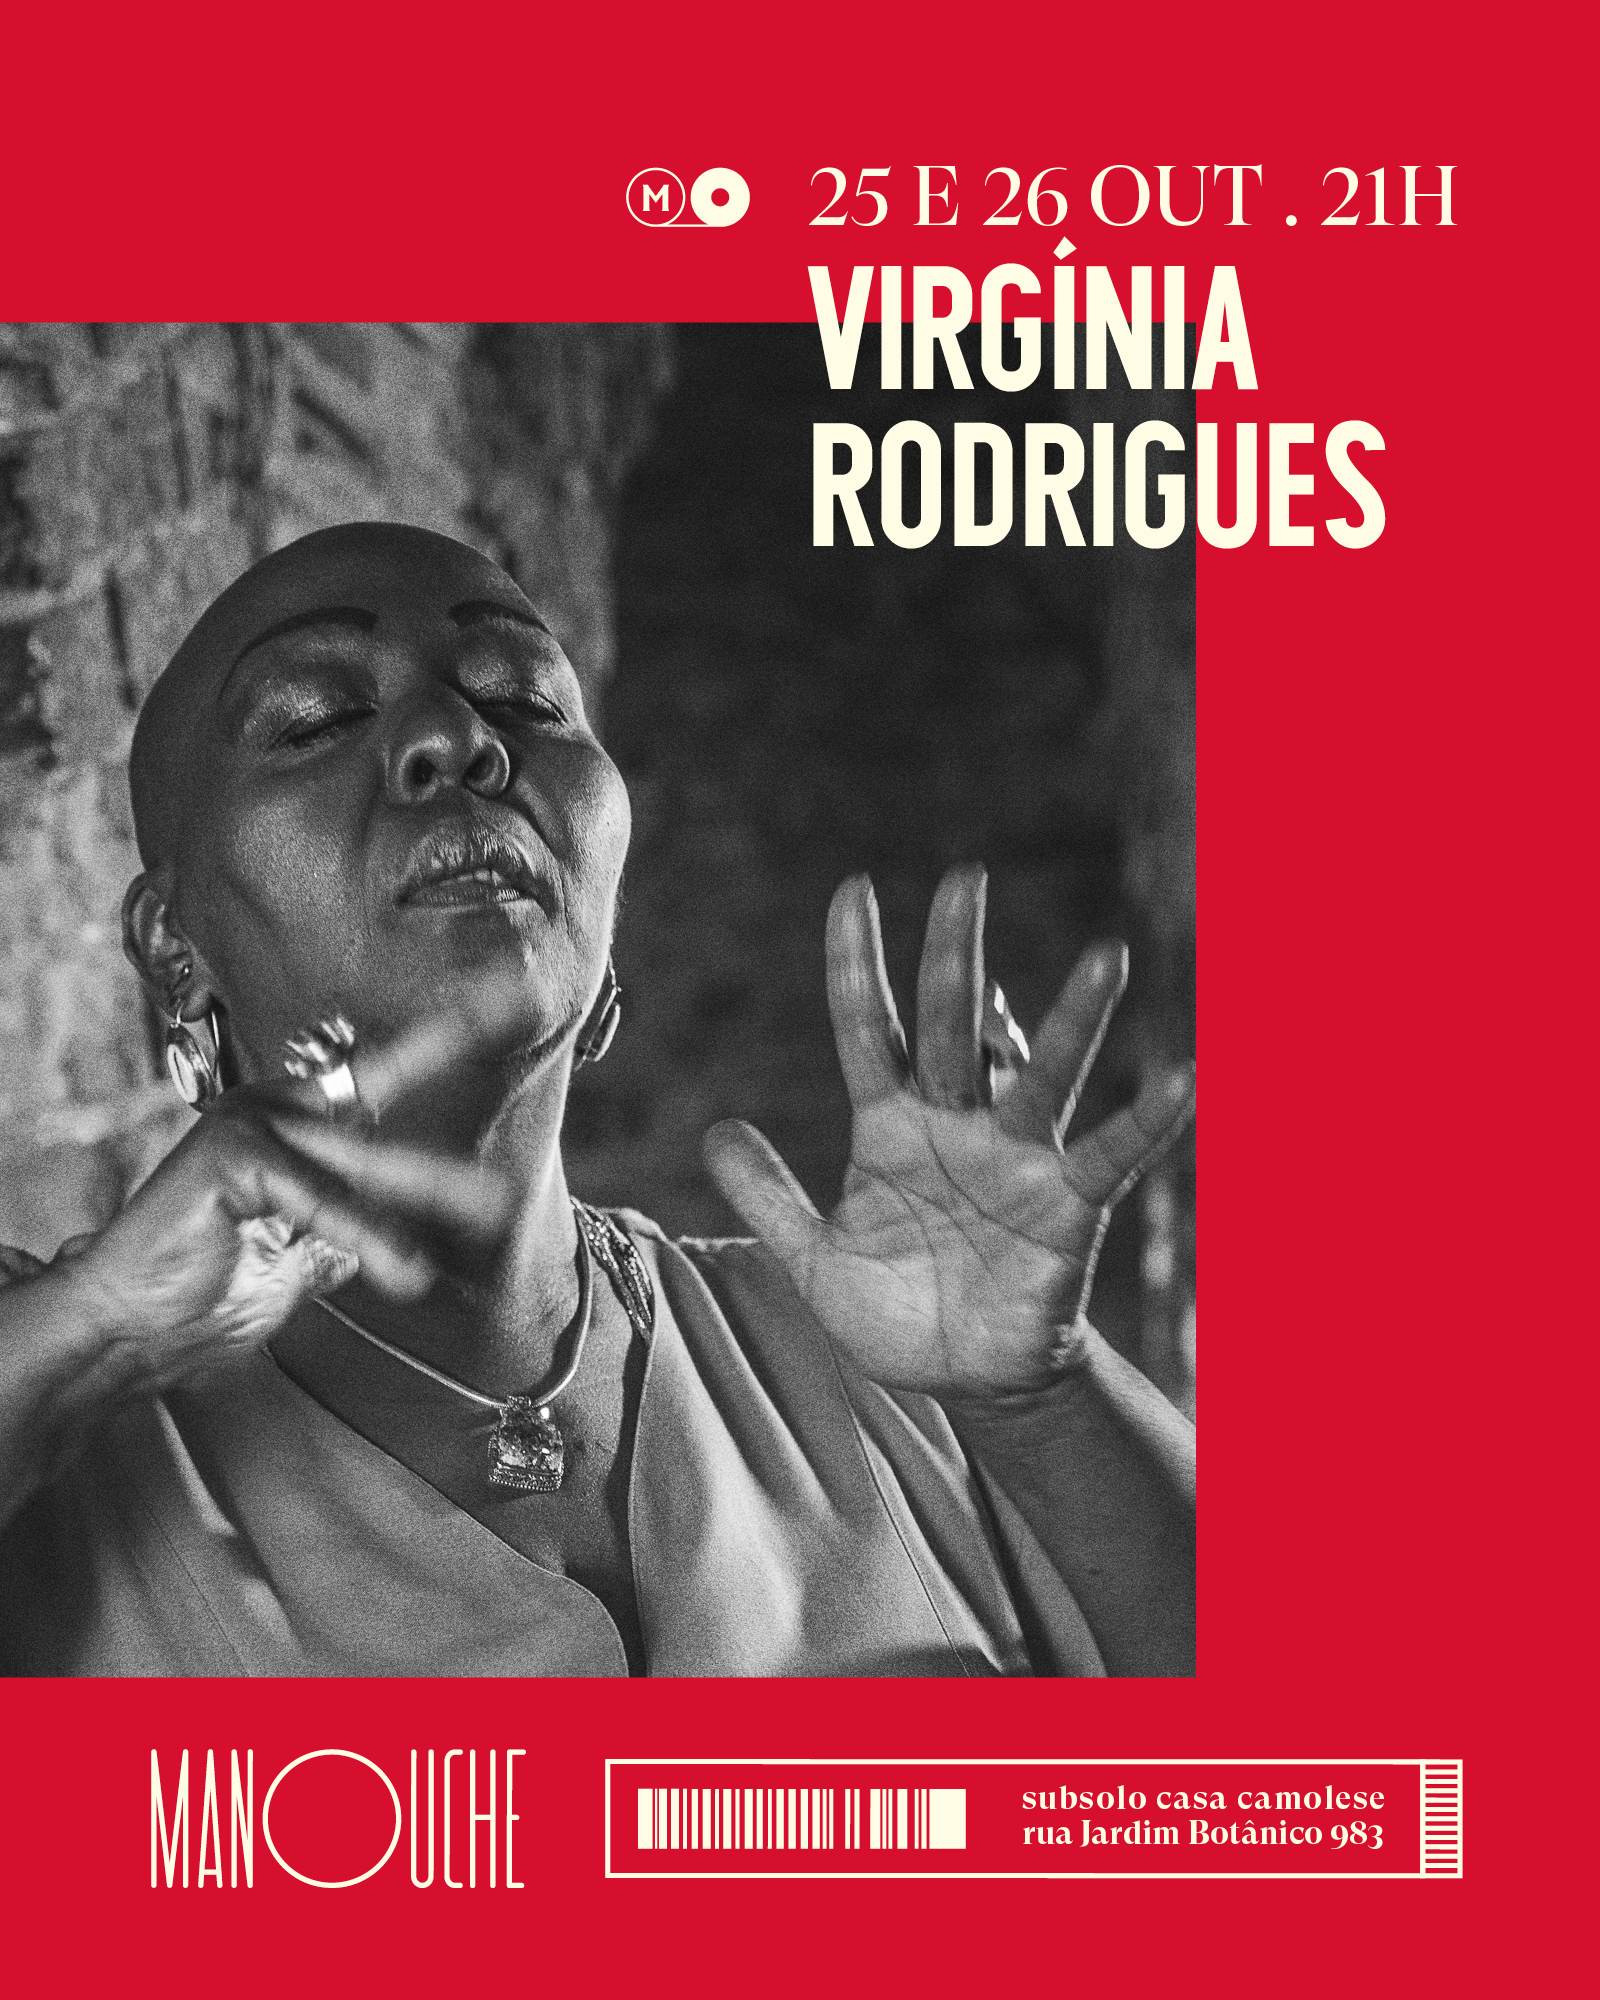 238 Virginia Rodrigues4 (2)